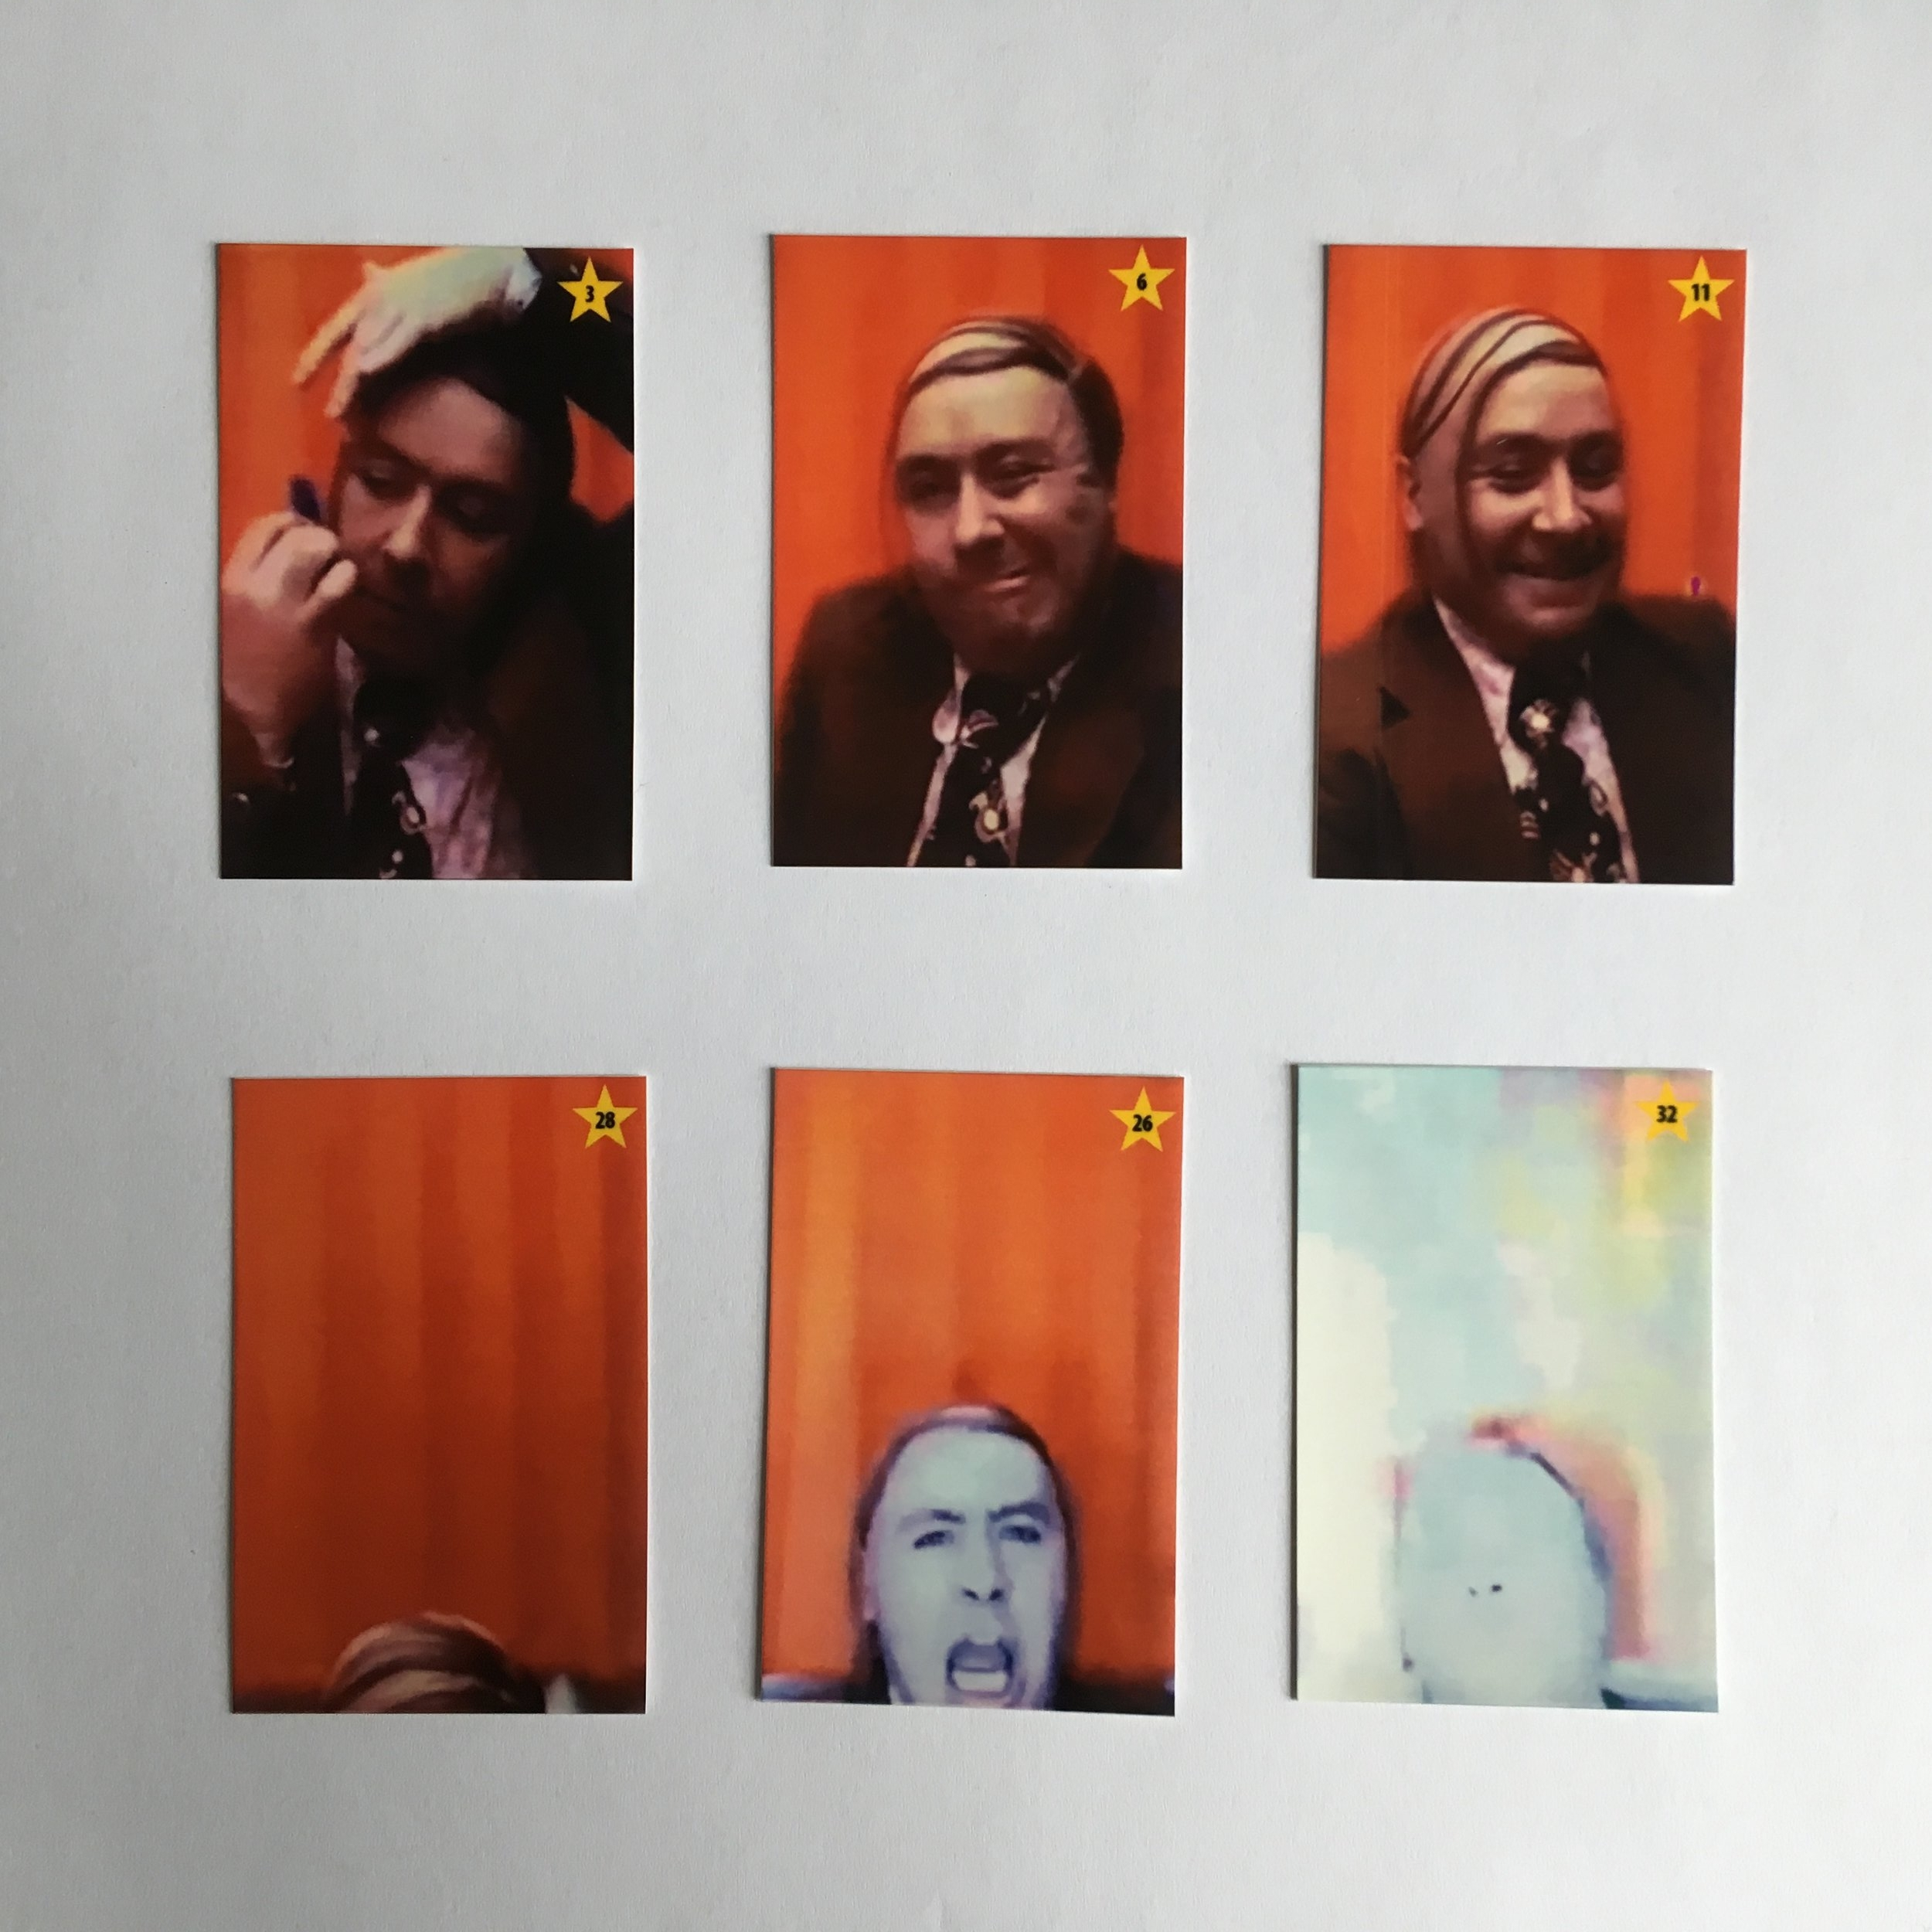 Each pack of stickers contains its own unique recap of the advert.